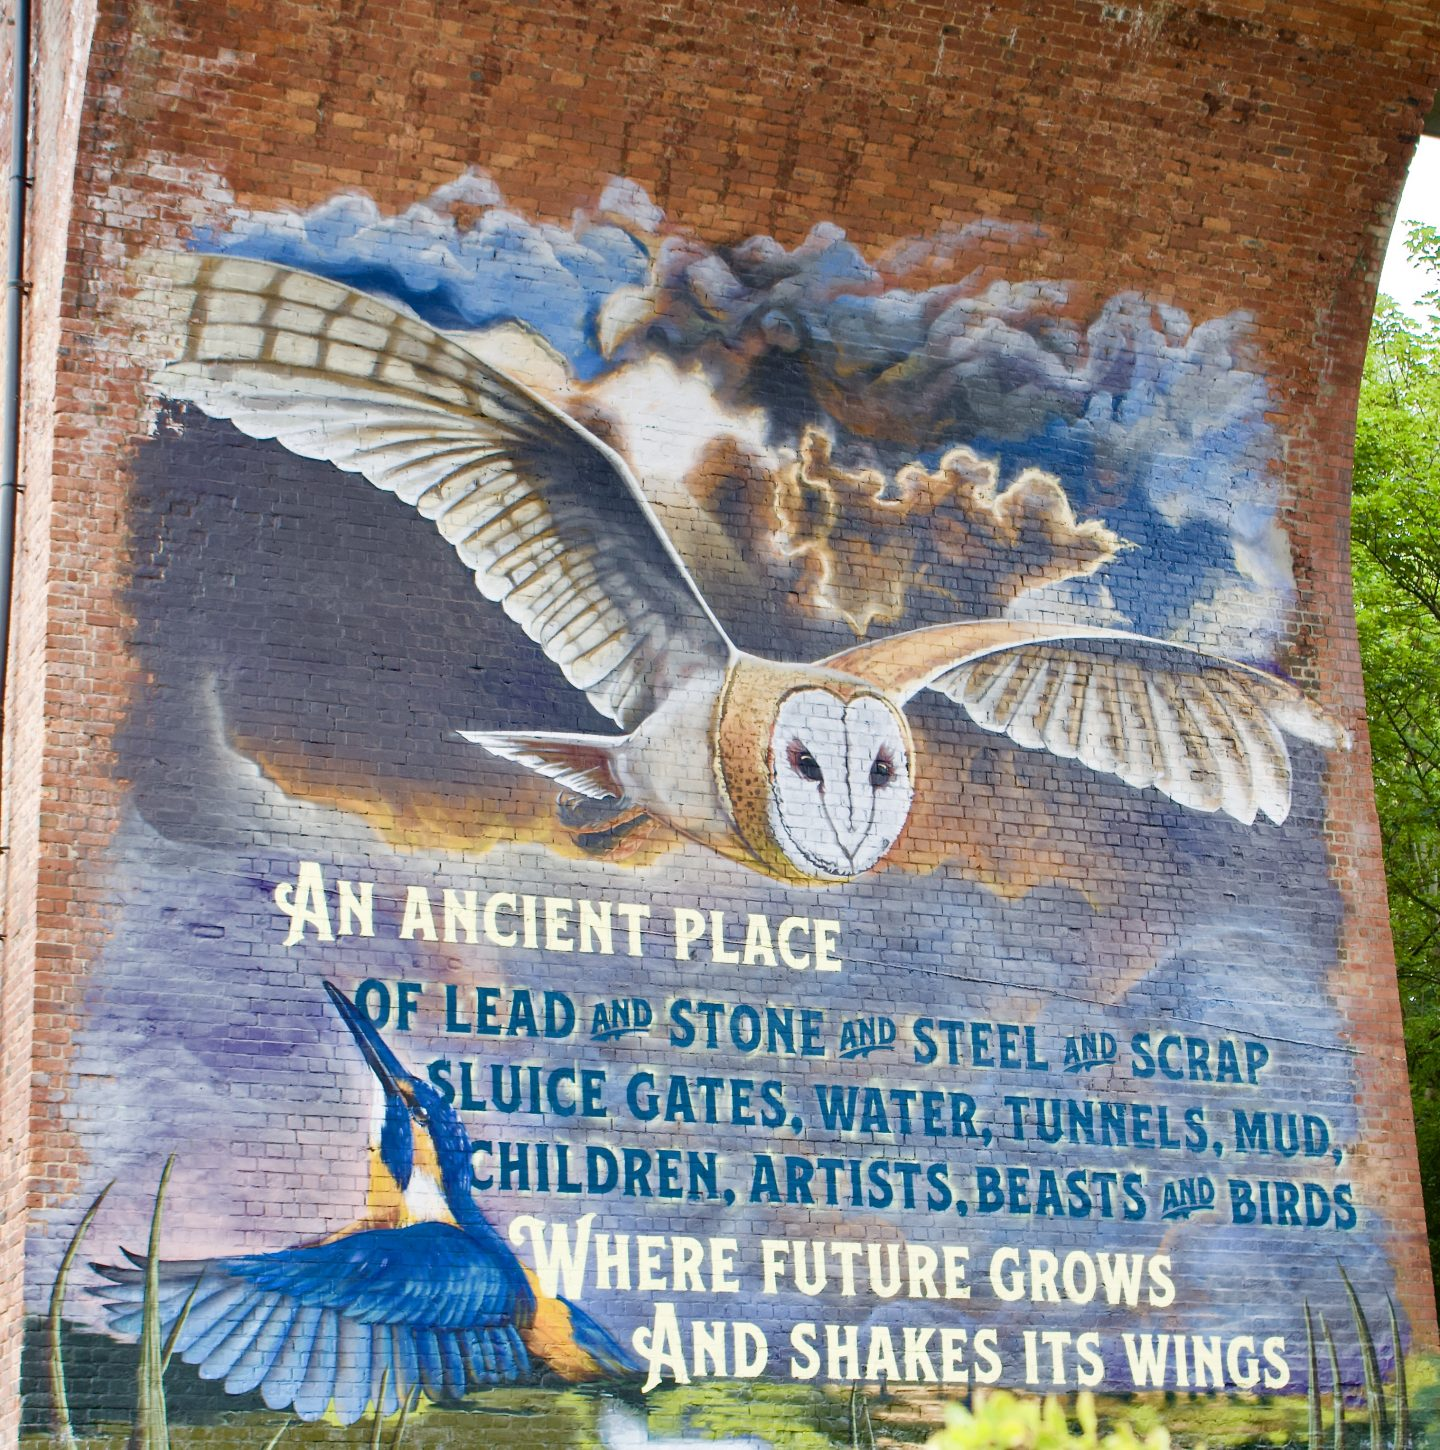 A cultural family day out at Ouseburn, Newcastle